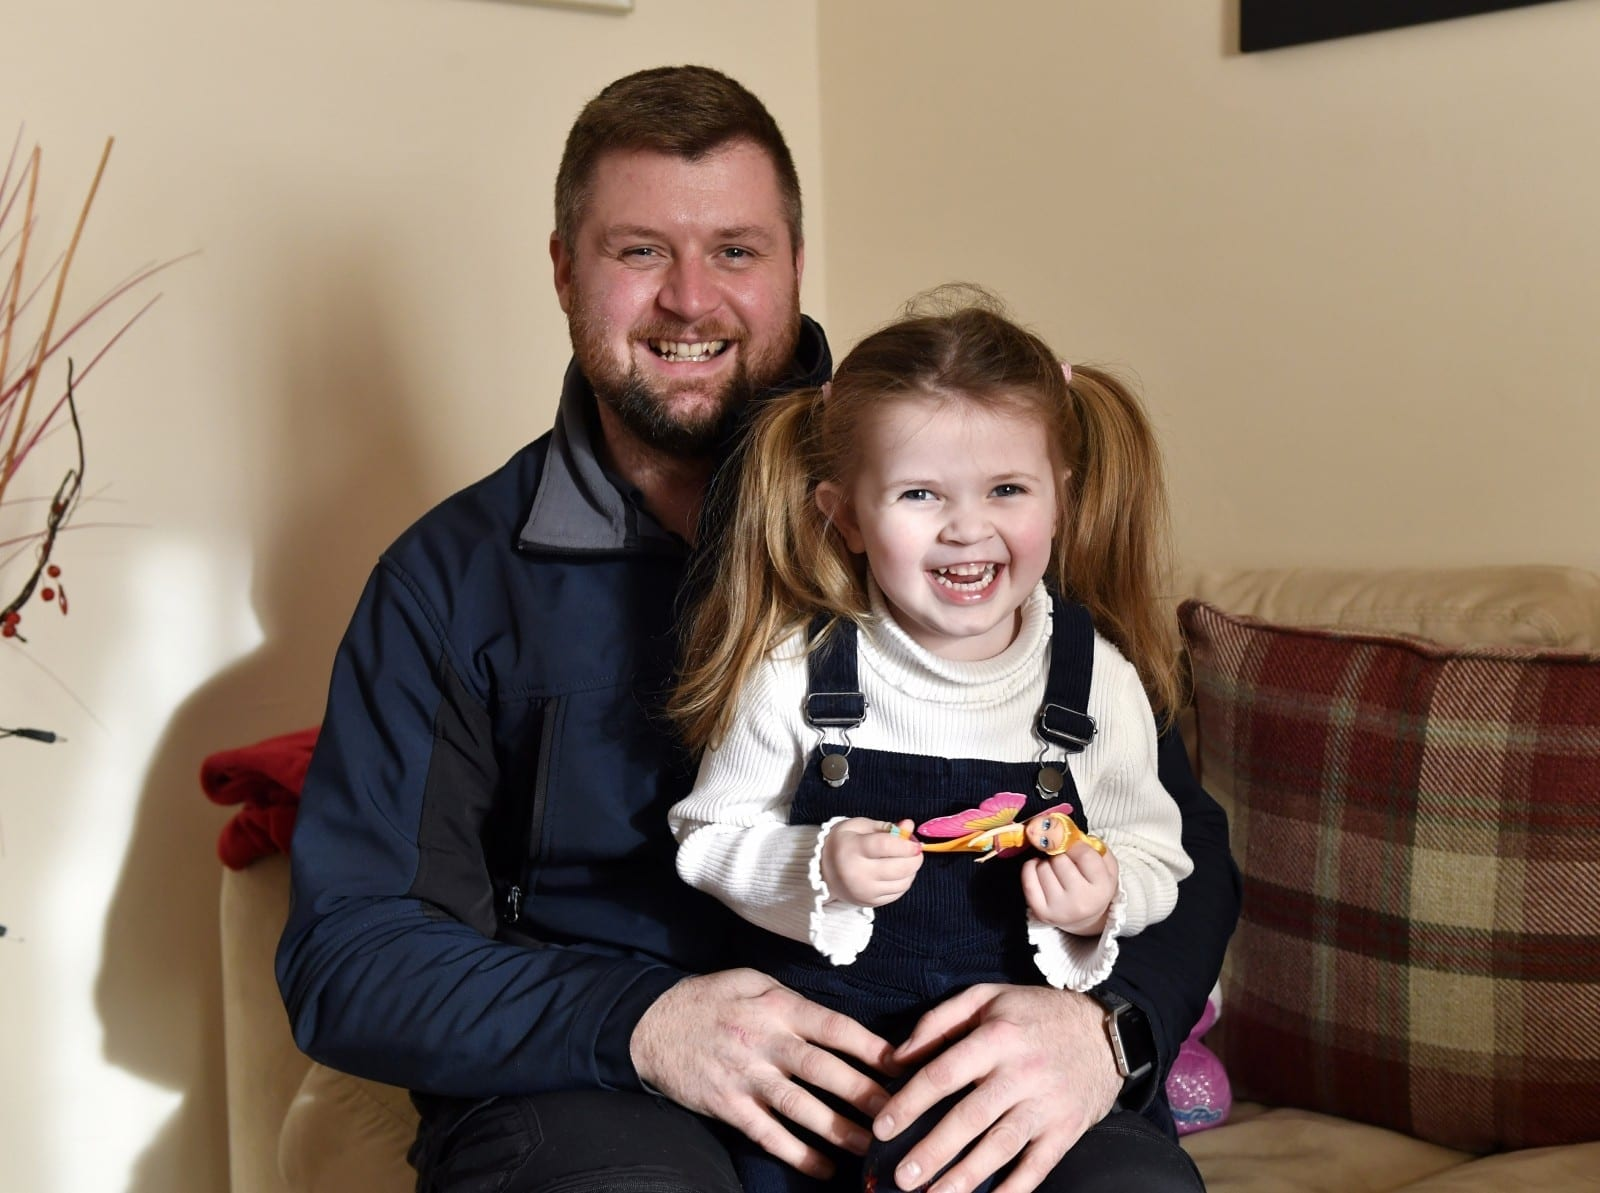 Four-Year-Old With Cystic Fibrosis Denied Access To Wonder Drug Available Just 10 Miles Away